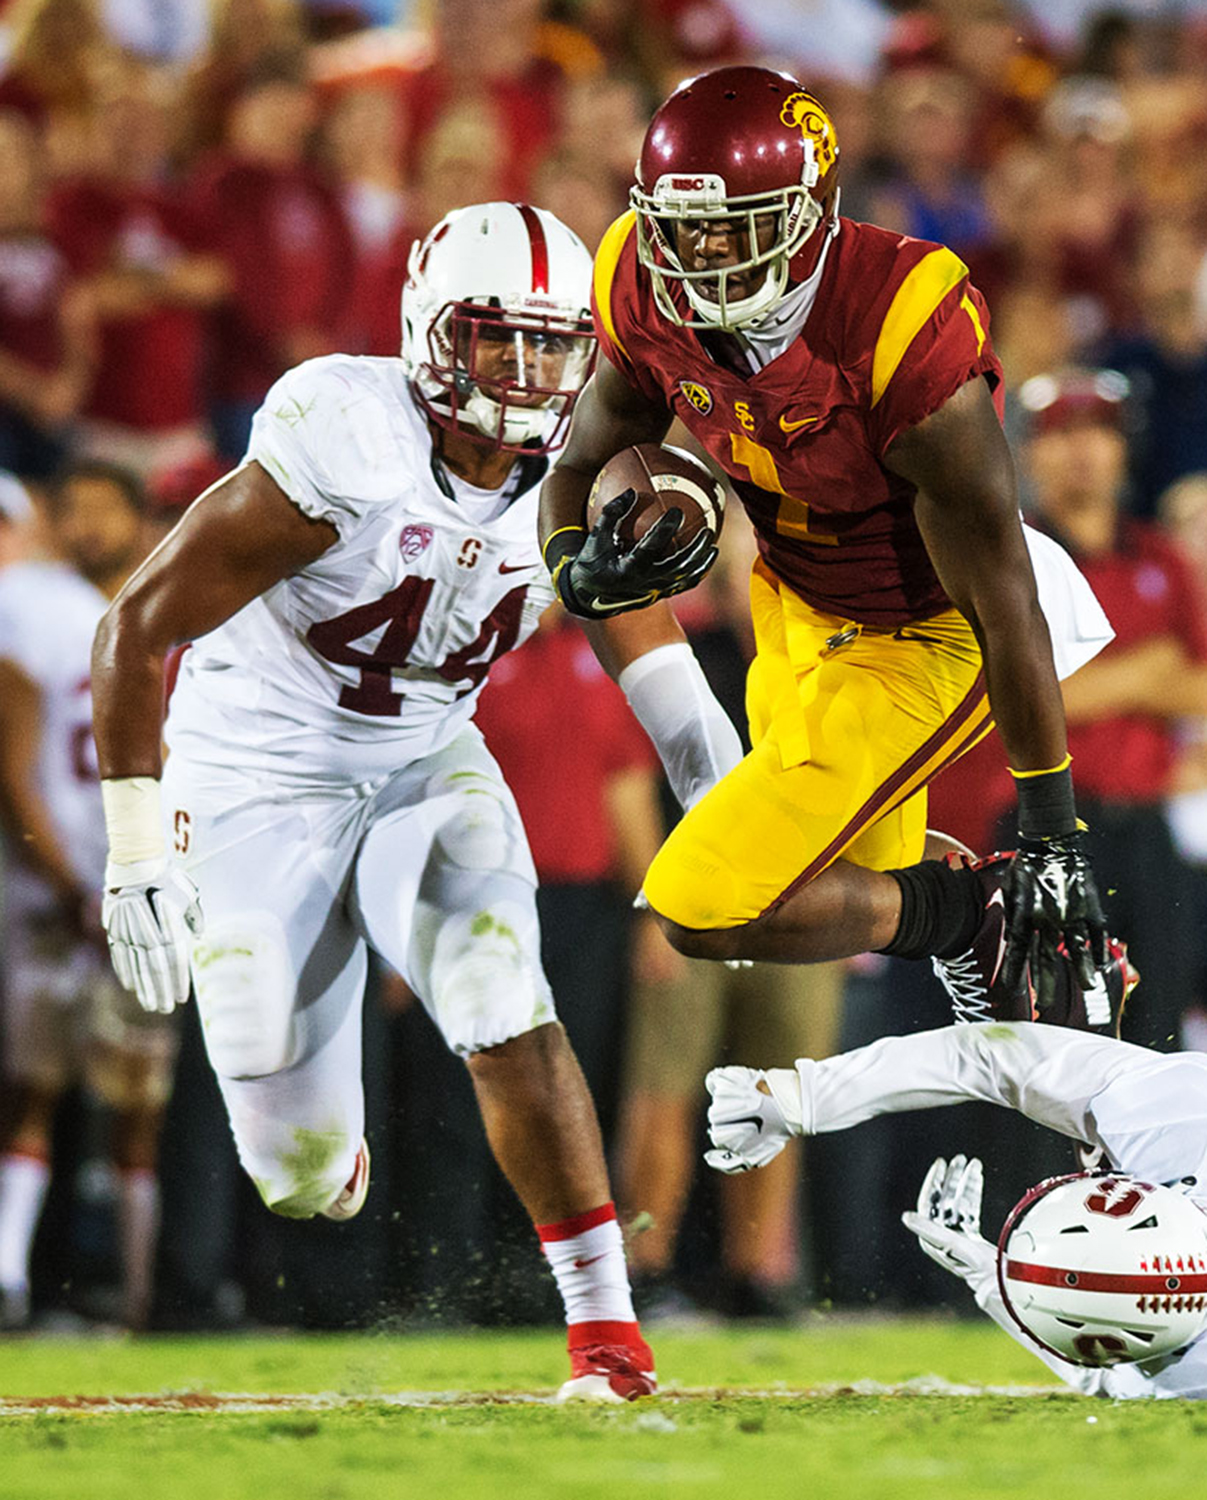 Run, Rogers, run · Junior wide receiver Darreus Rogers has been limited in practice due to a hamstring injury he suffered during USC's win at ASU. - Tal Volk| Daily Trojan